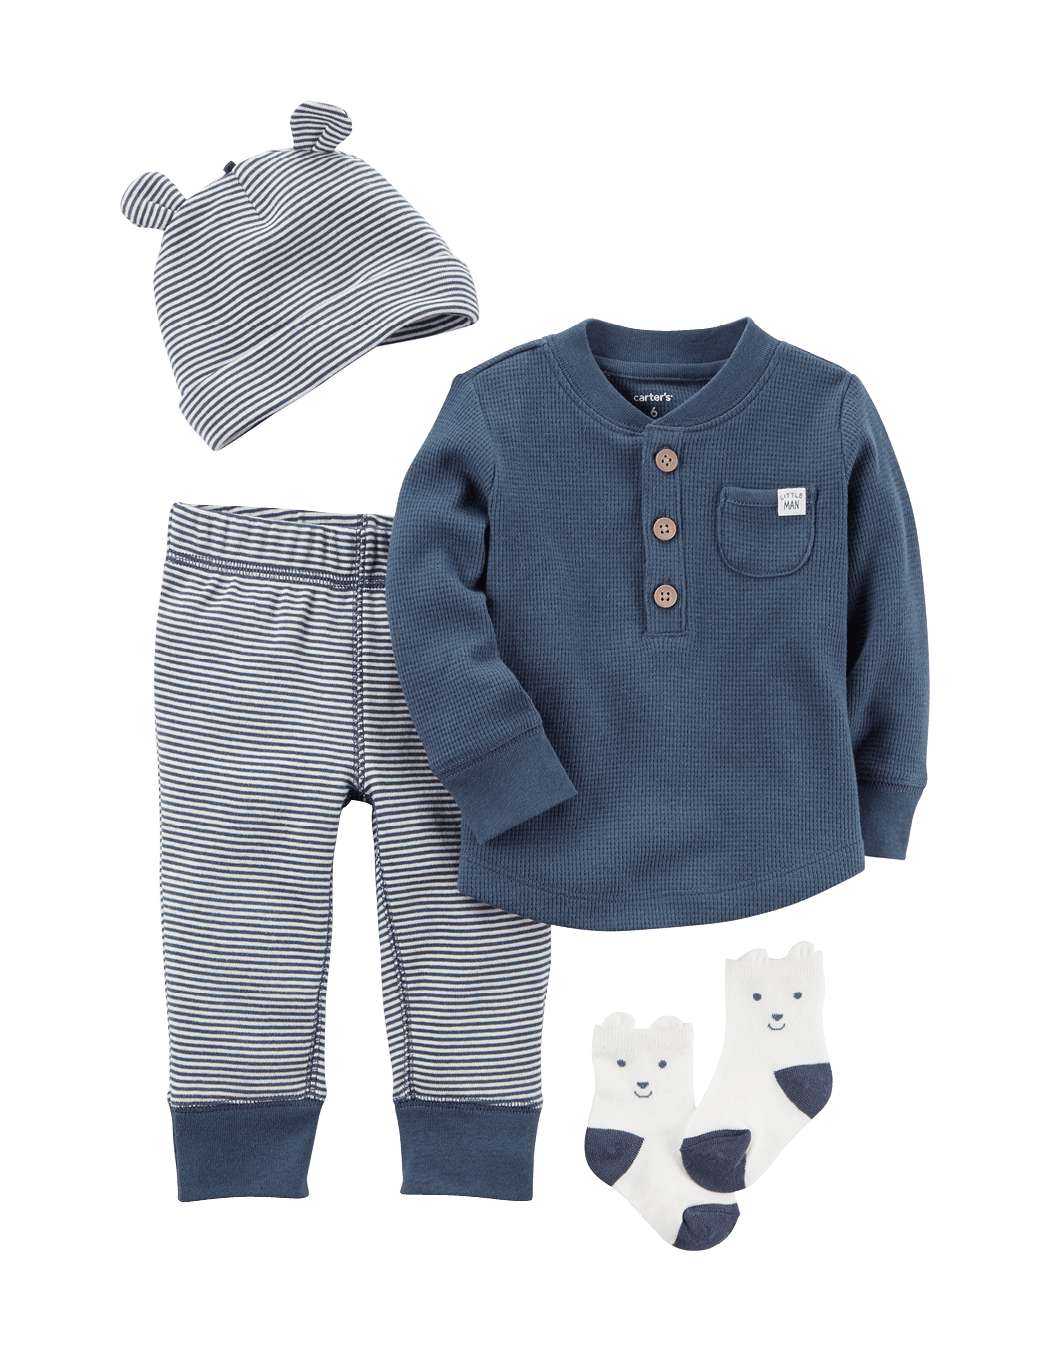 1a8d13116628 Baby Clothing Necessity - Win With Carter s